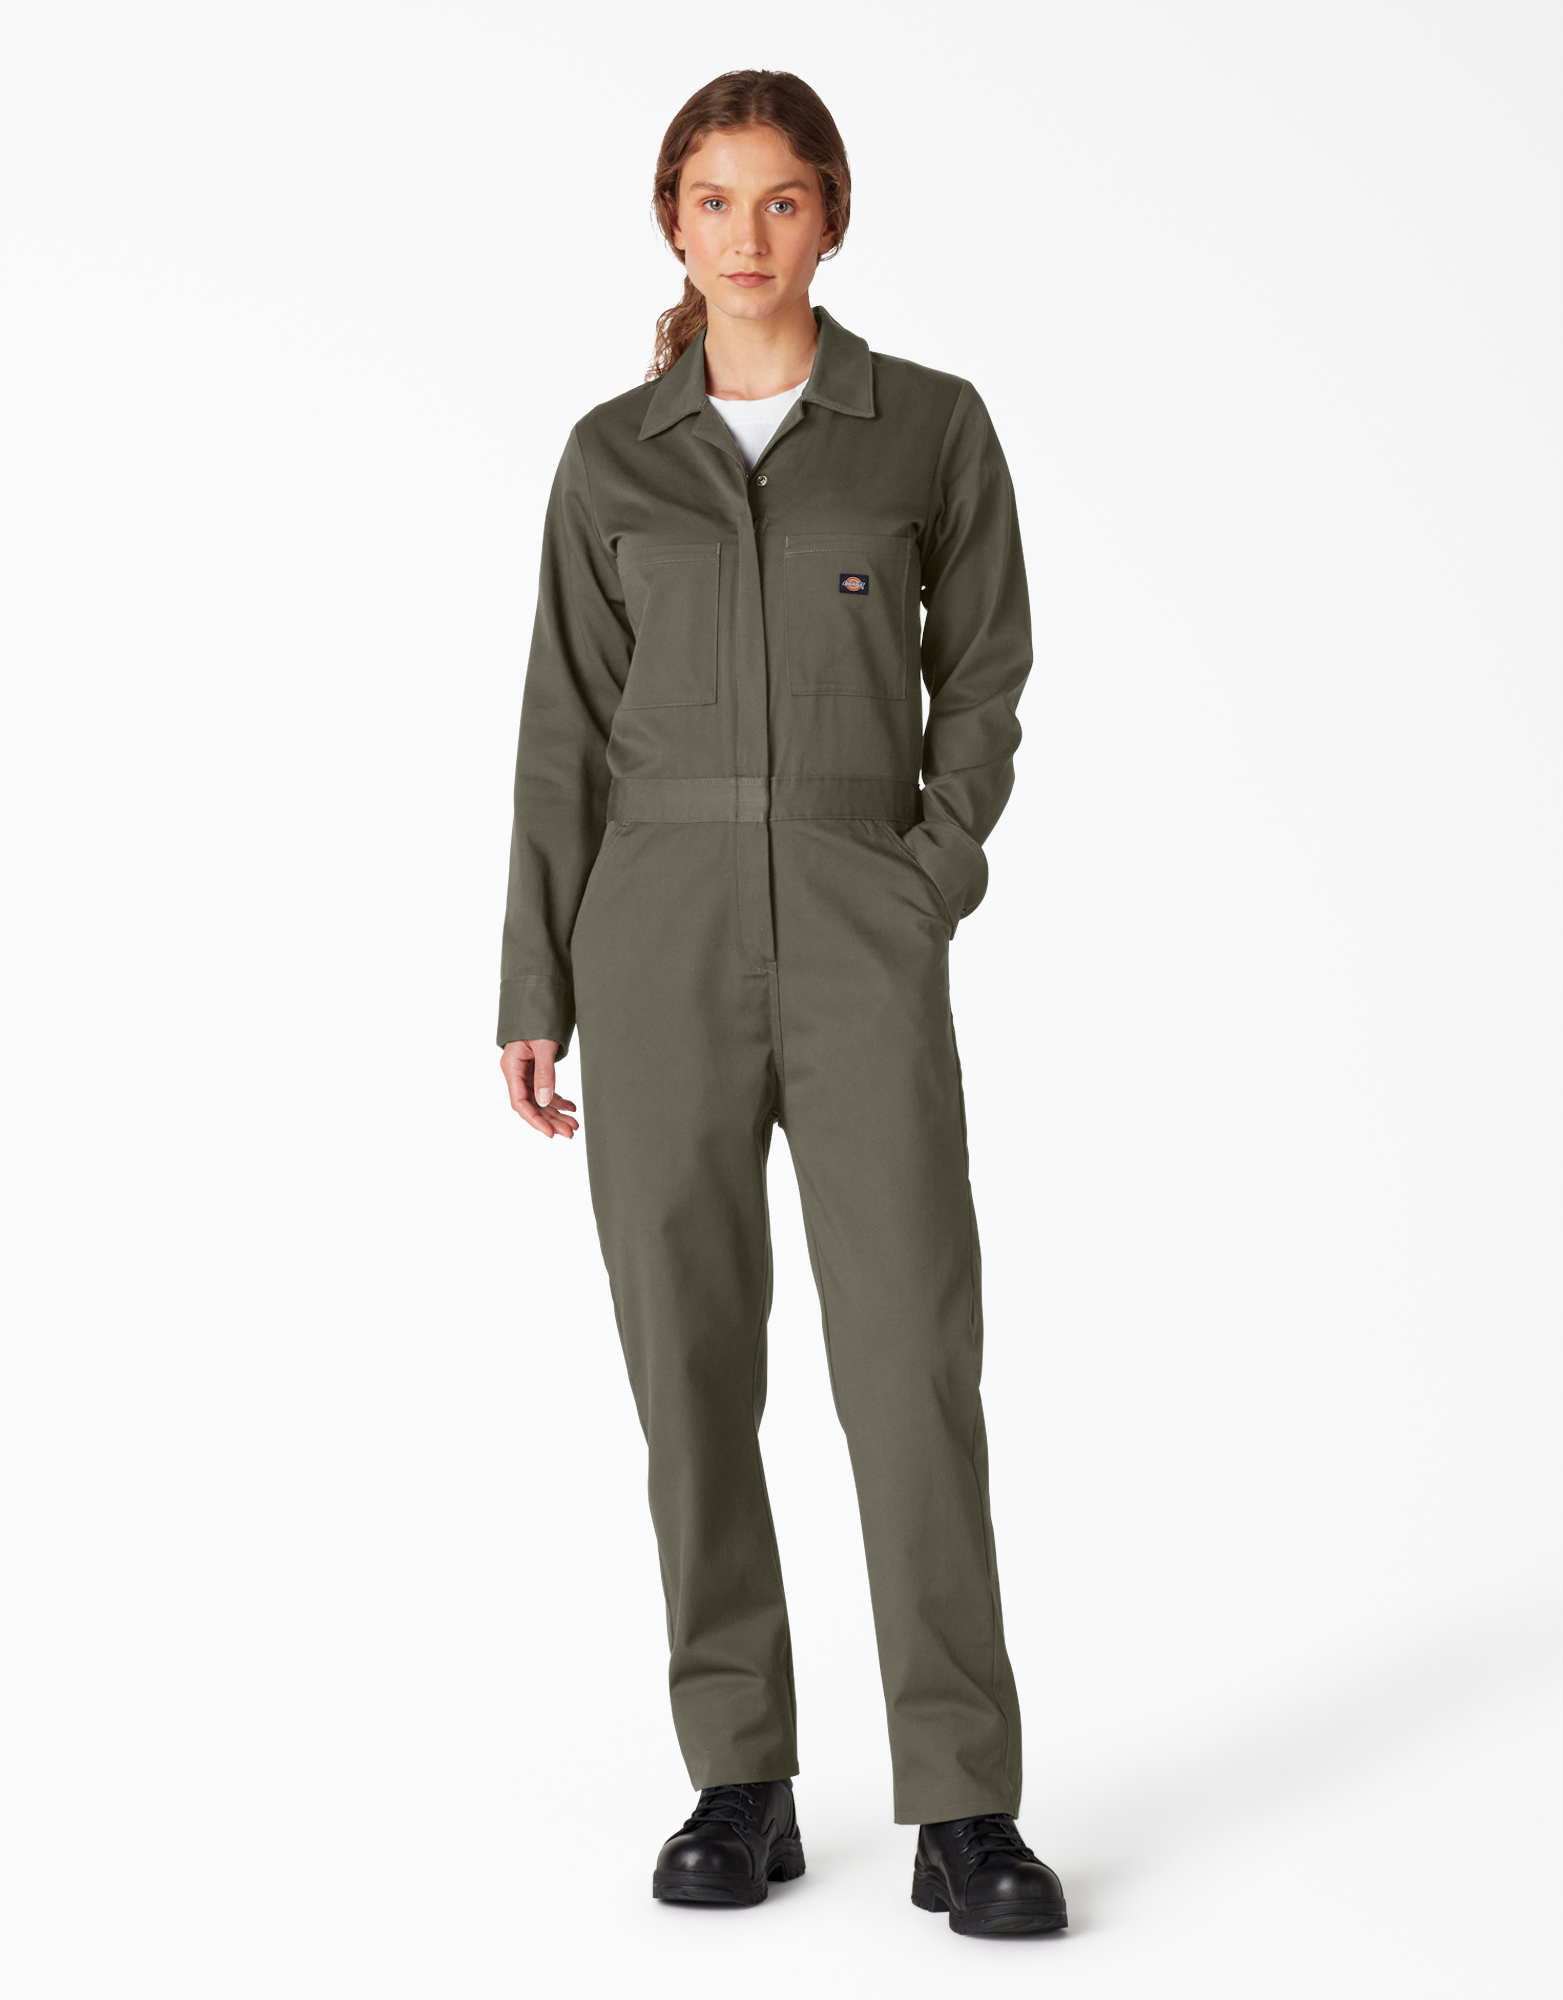 Women's Long Sleeve Cotton Coverall - Moss Green (MS)